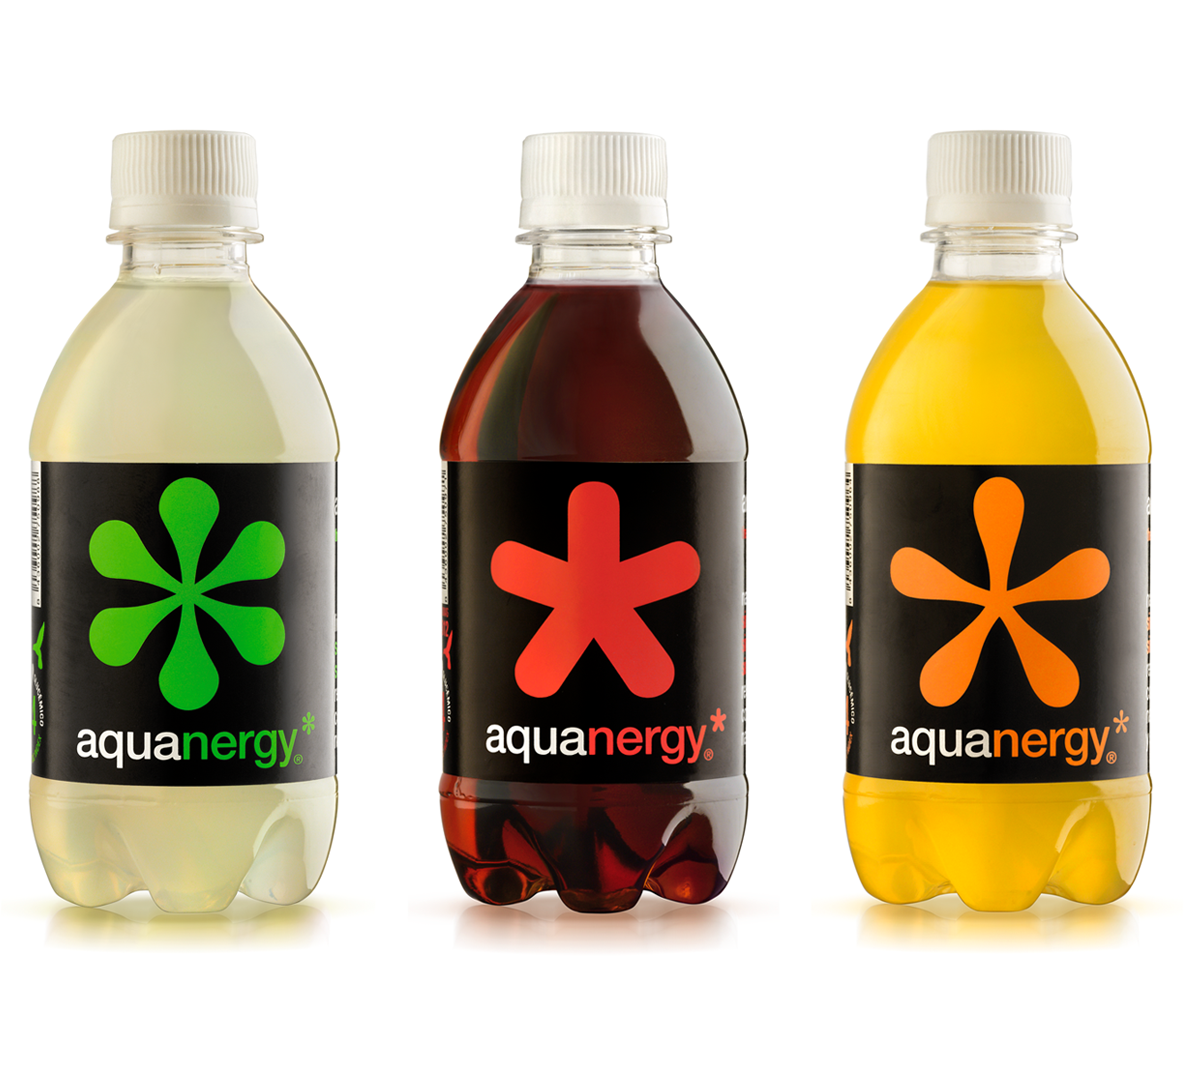 Aquanergy Diseño Packaging Branding Refrescos naturales sin azúcar